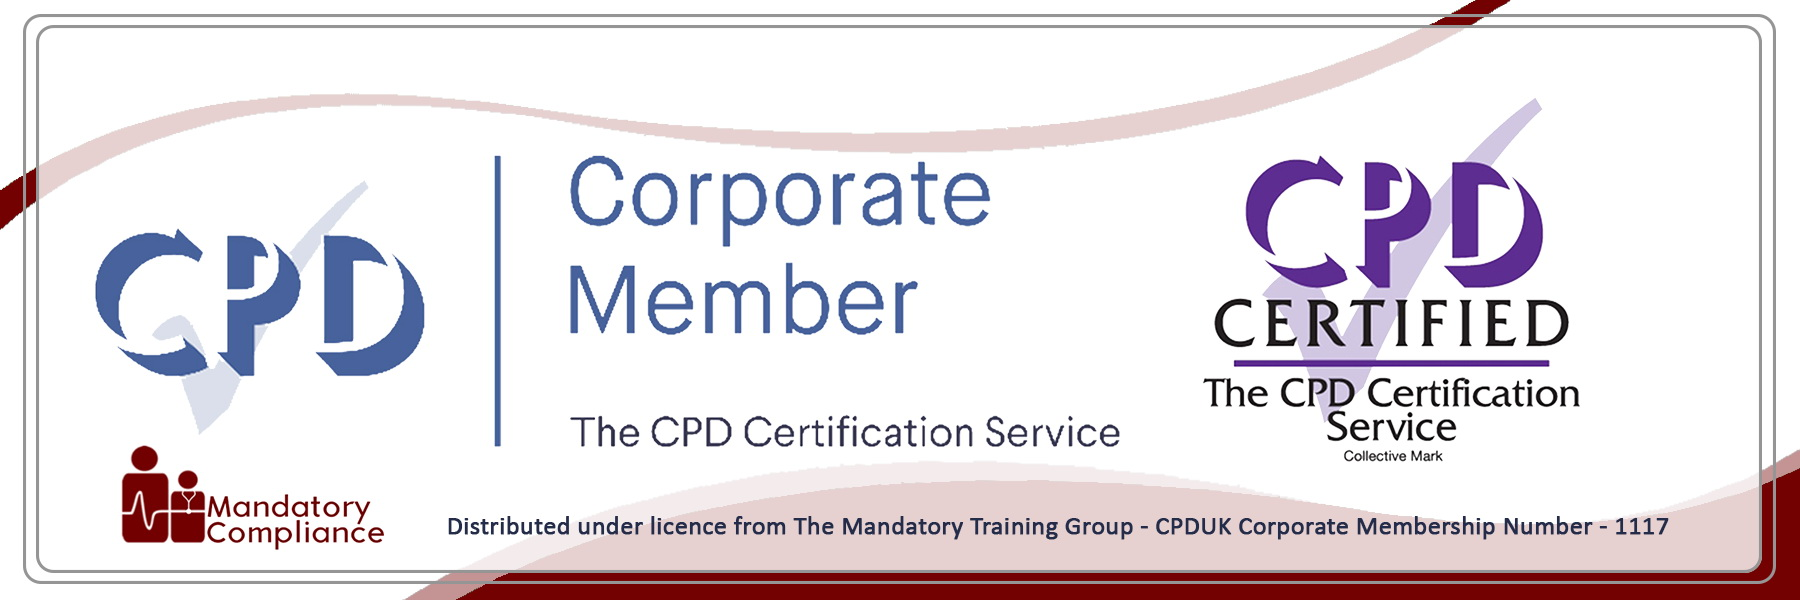 Health and Safety Training Courses - Online Training Courses - Mandatory Compliance UK -